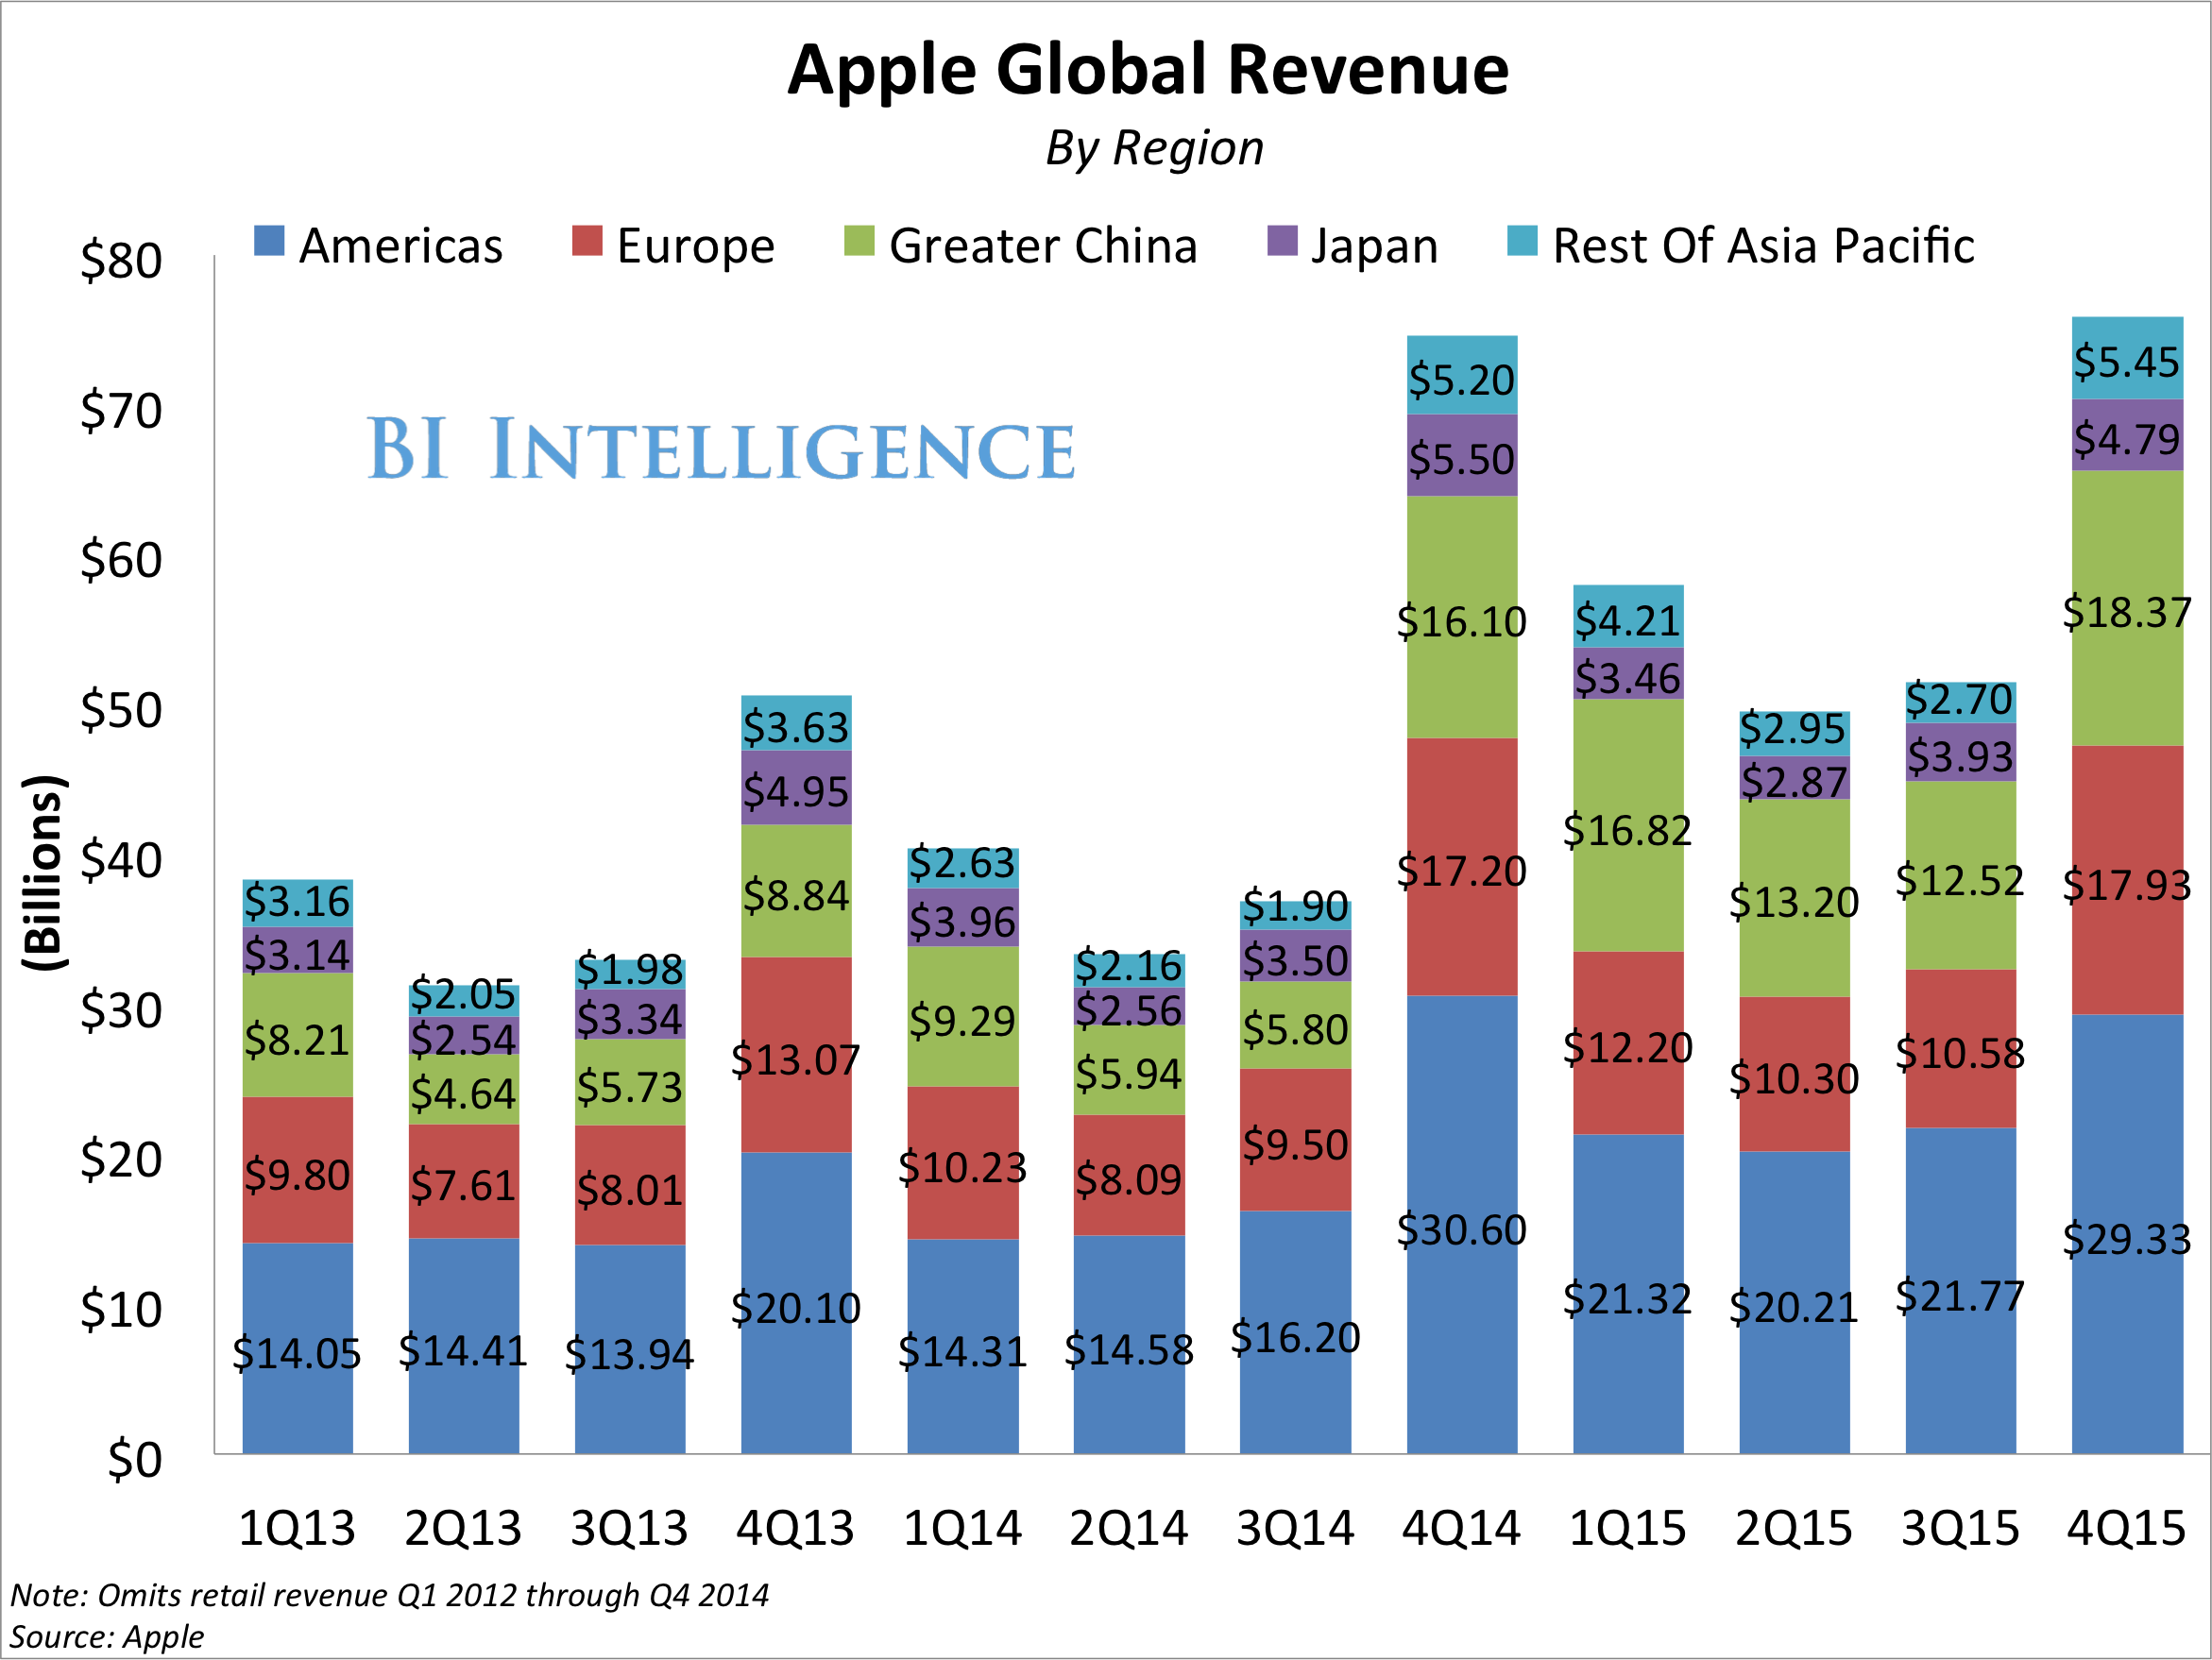 apple earnings by region 4q15 stacked